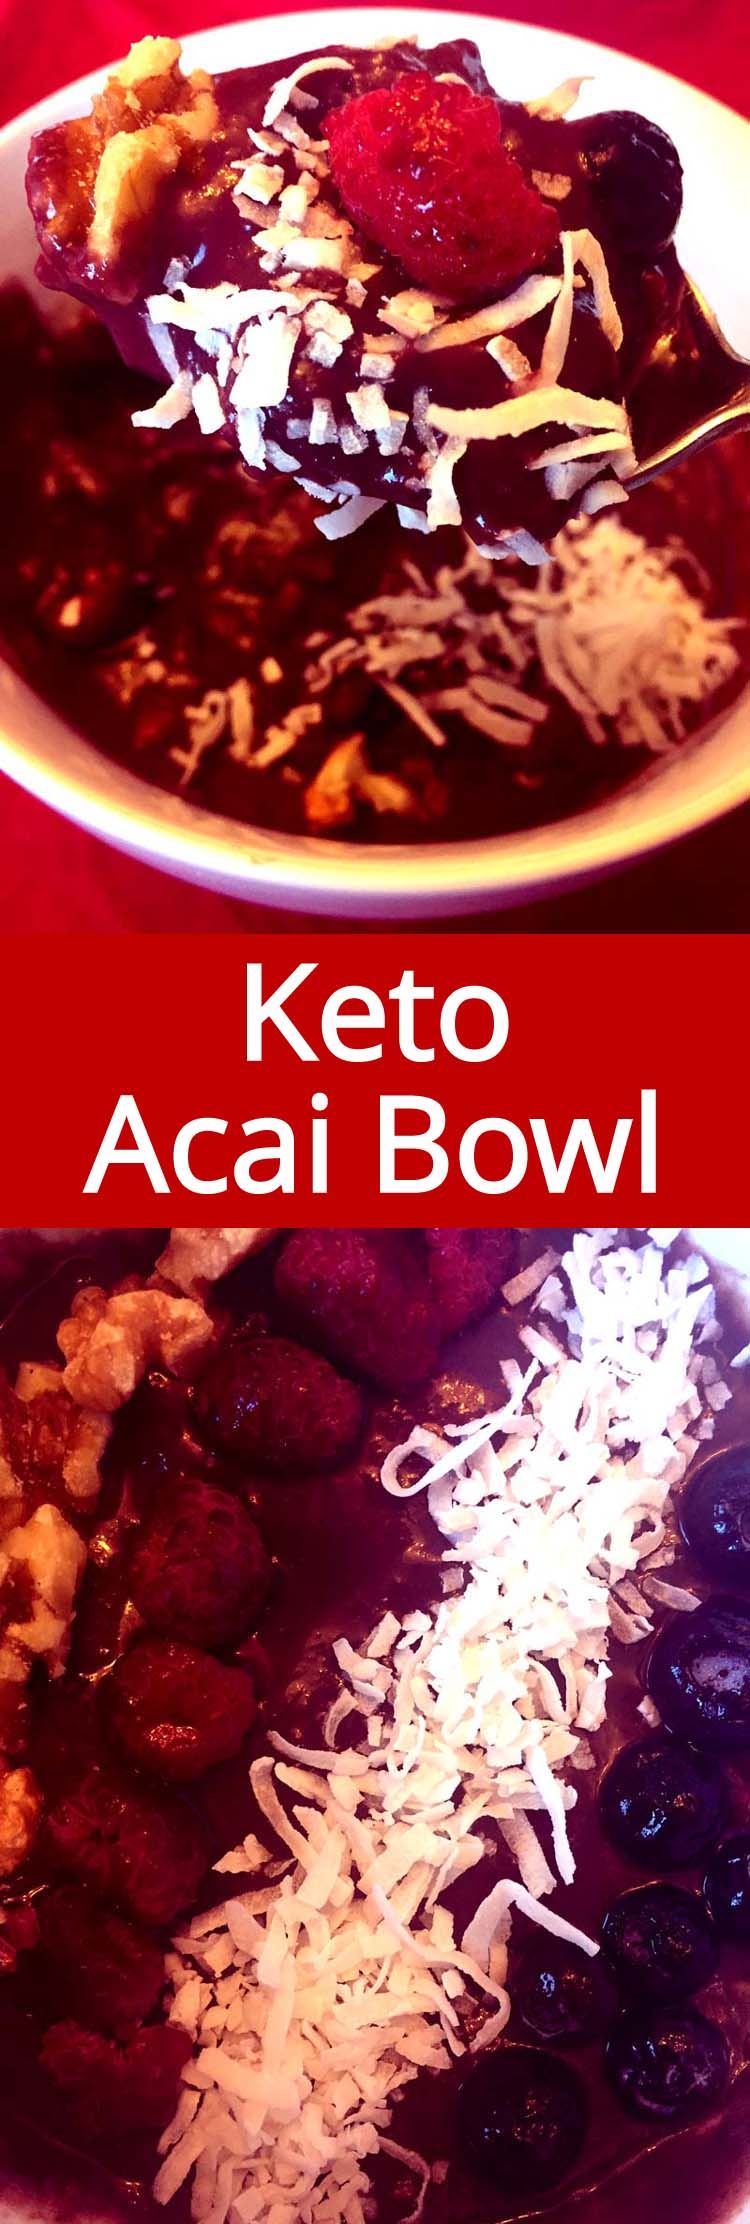 This keto acai bowl is amazing! Finally an acai bowl that is not loaded with sugar and carbs! I love this low-carb acai bowl!